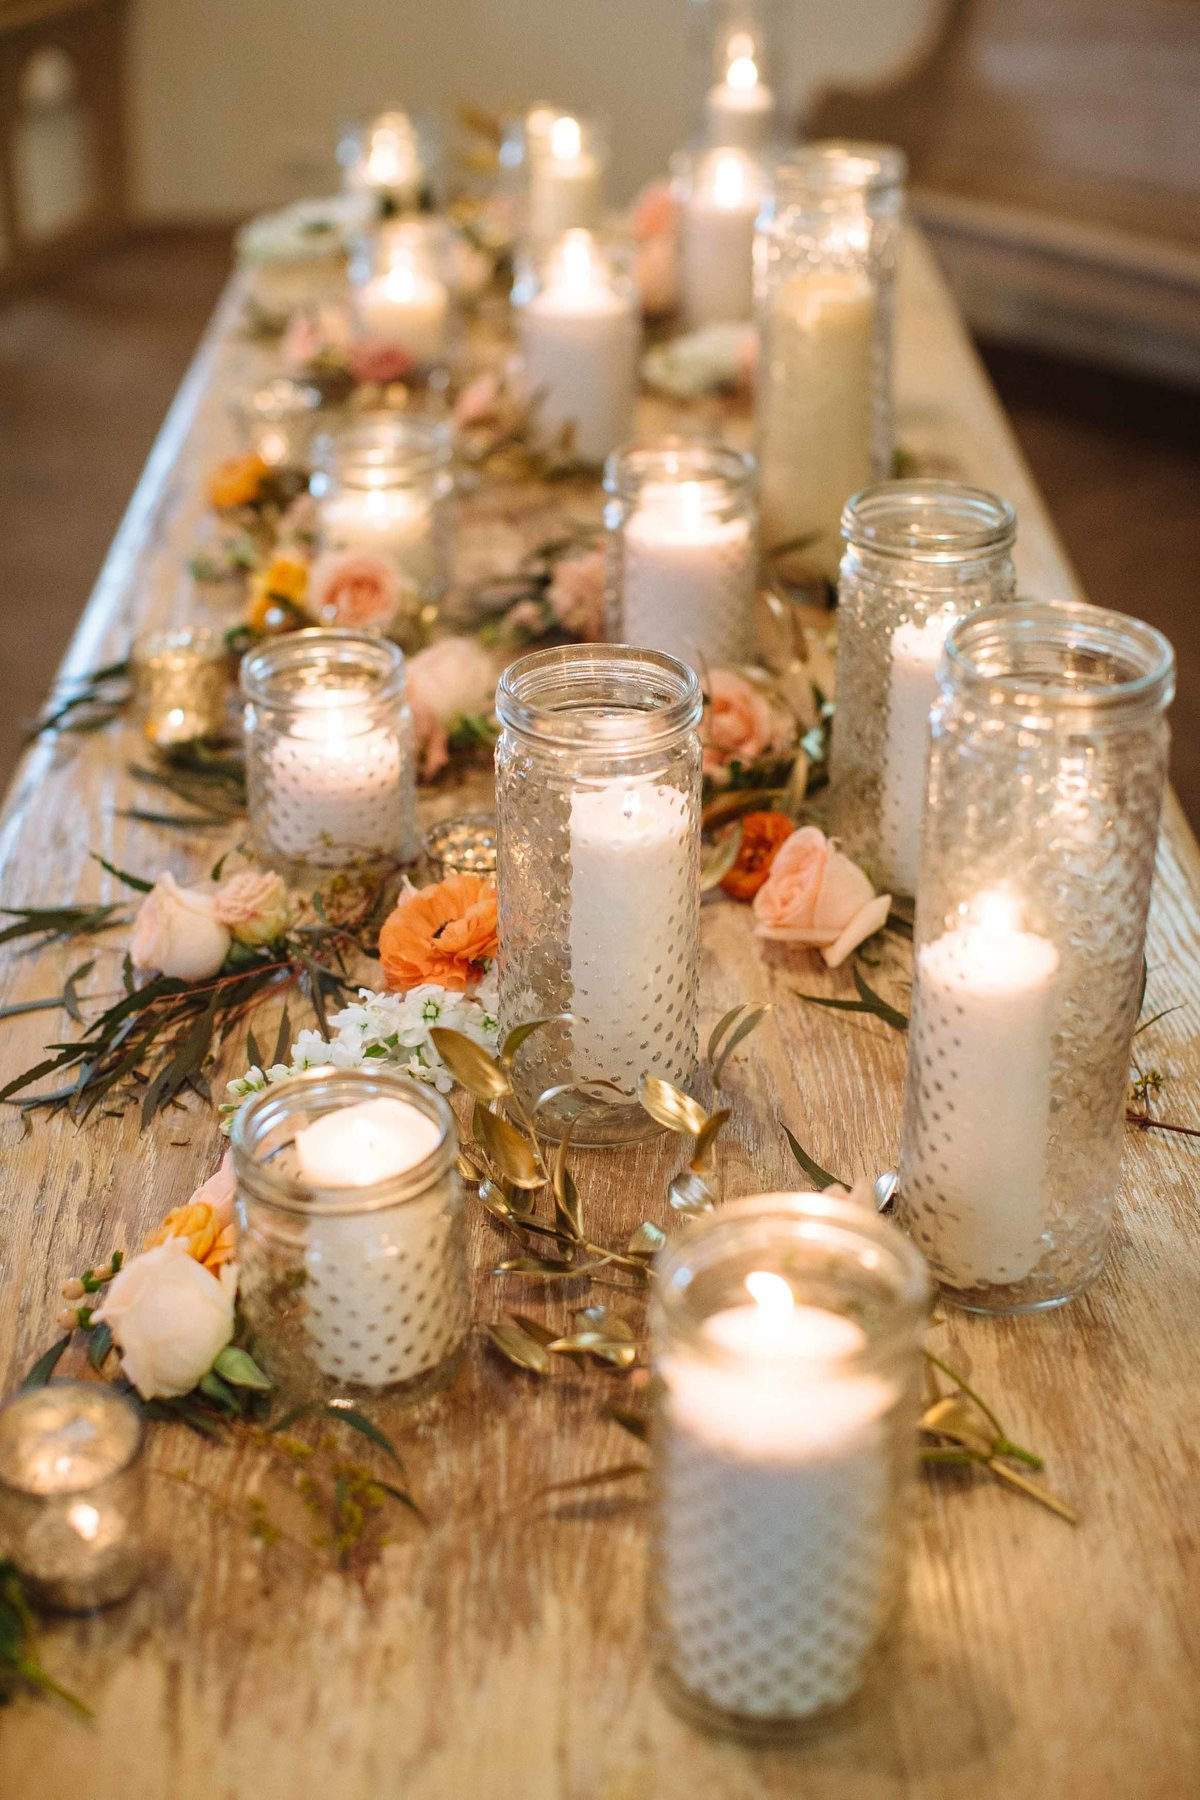 A table decorated for a wedding reception with lots of candles.